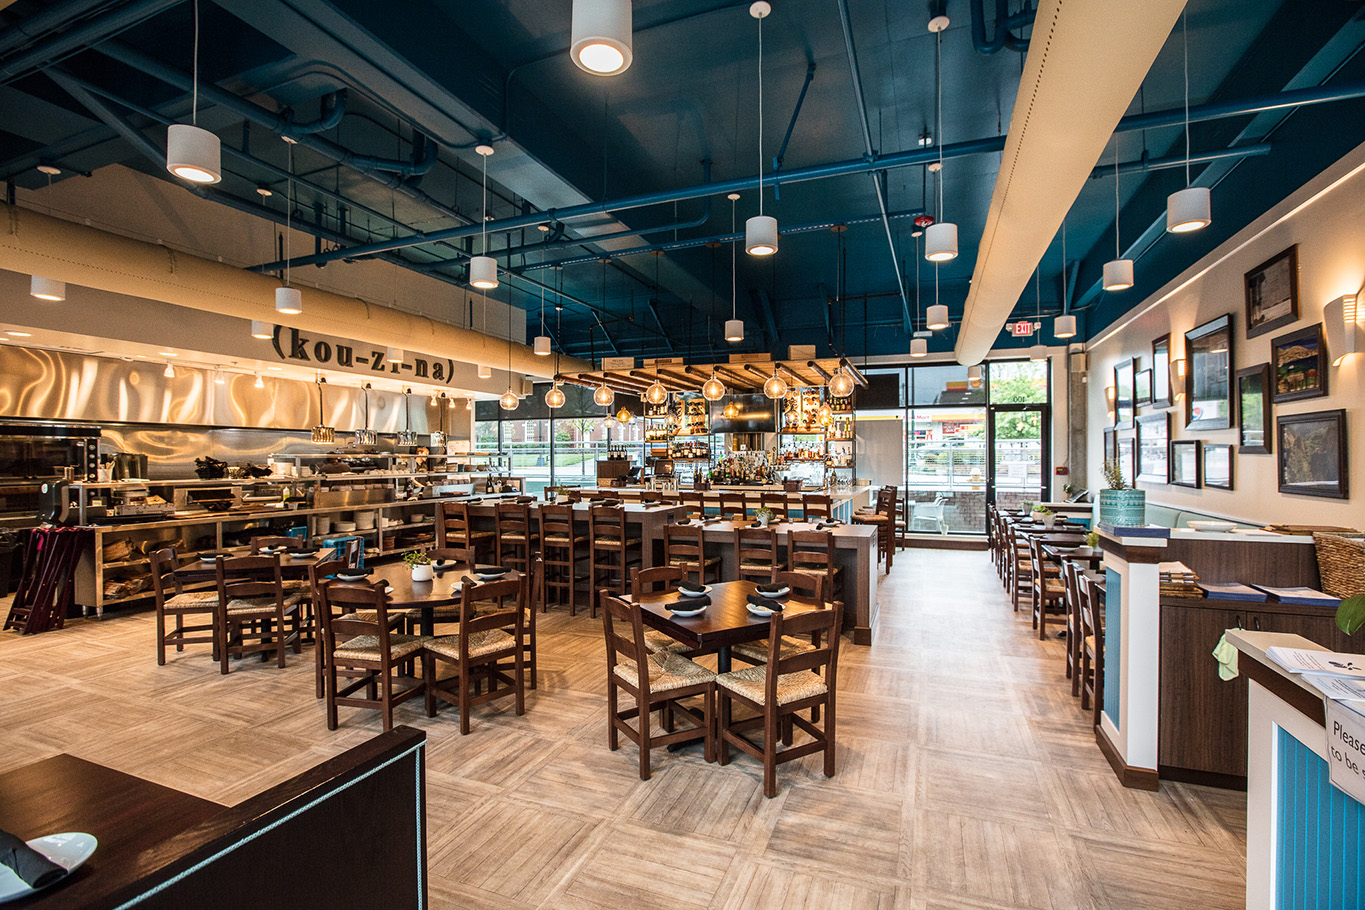 Lake House featured at Ji-Roz Restaurant  |  Greenville, SC  (Photo Credit: Firestine Photography)